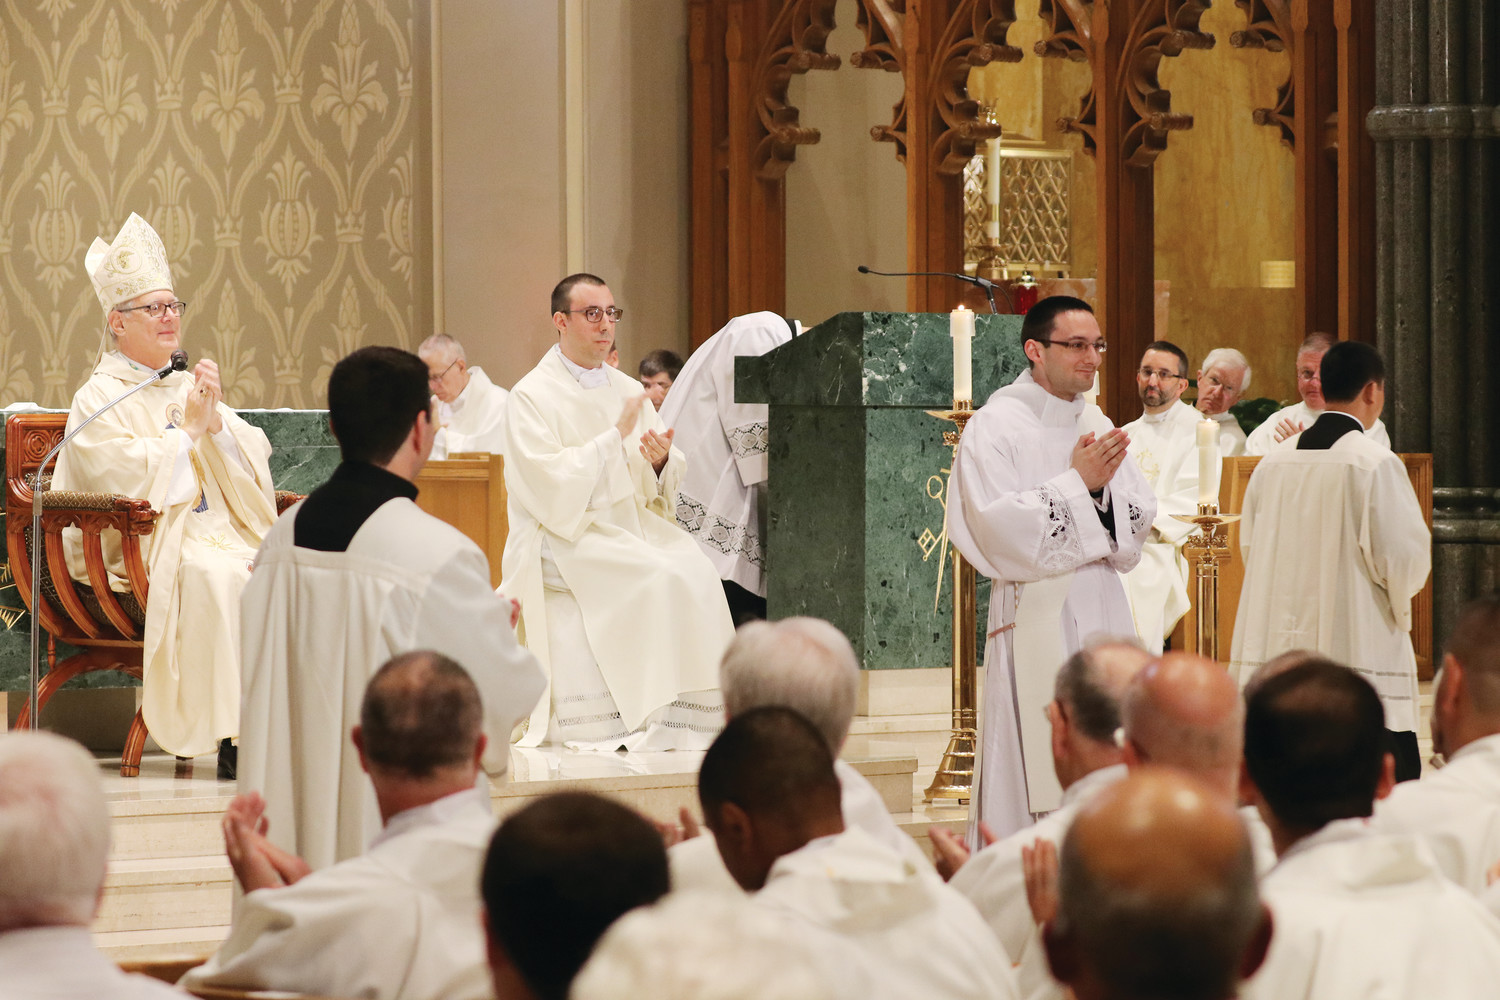 Bishop Tobin leads everyone in attendance in applauding Father Dufour on the occasion of his ordination to the priesthood.